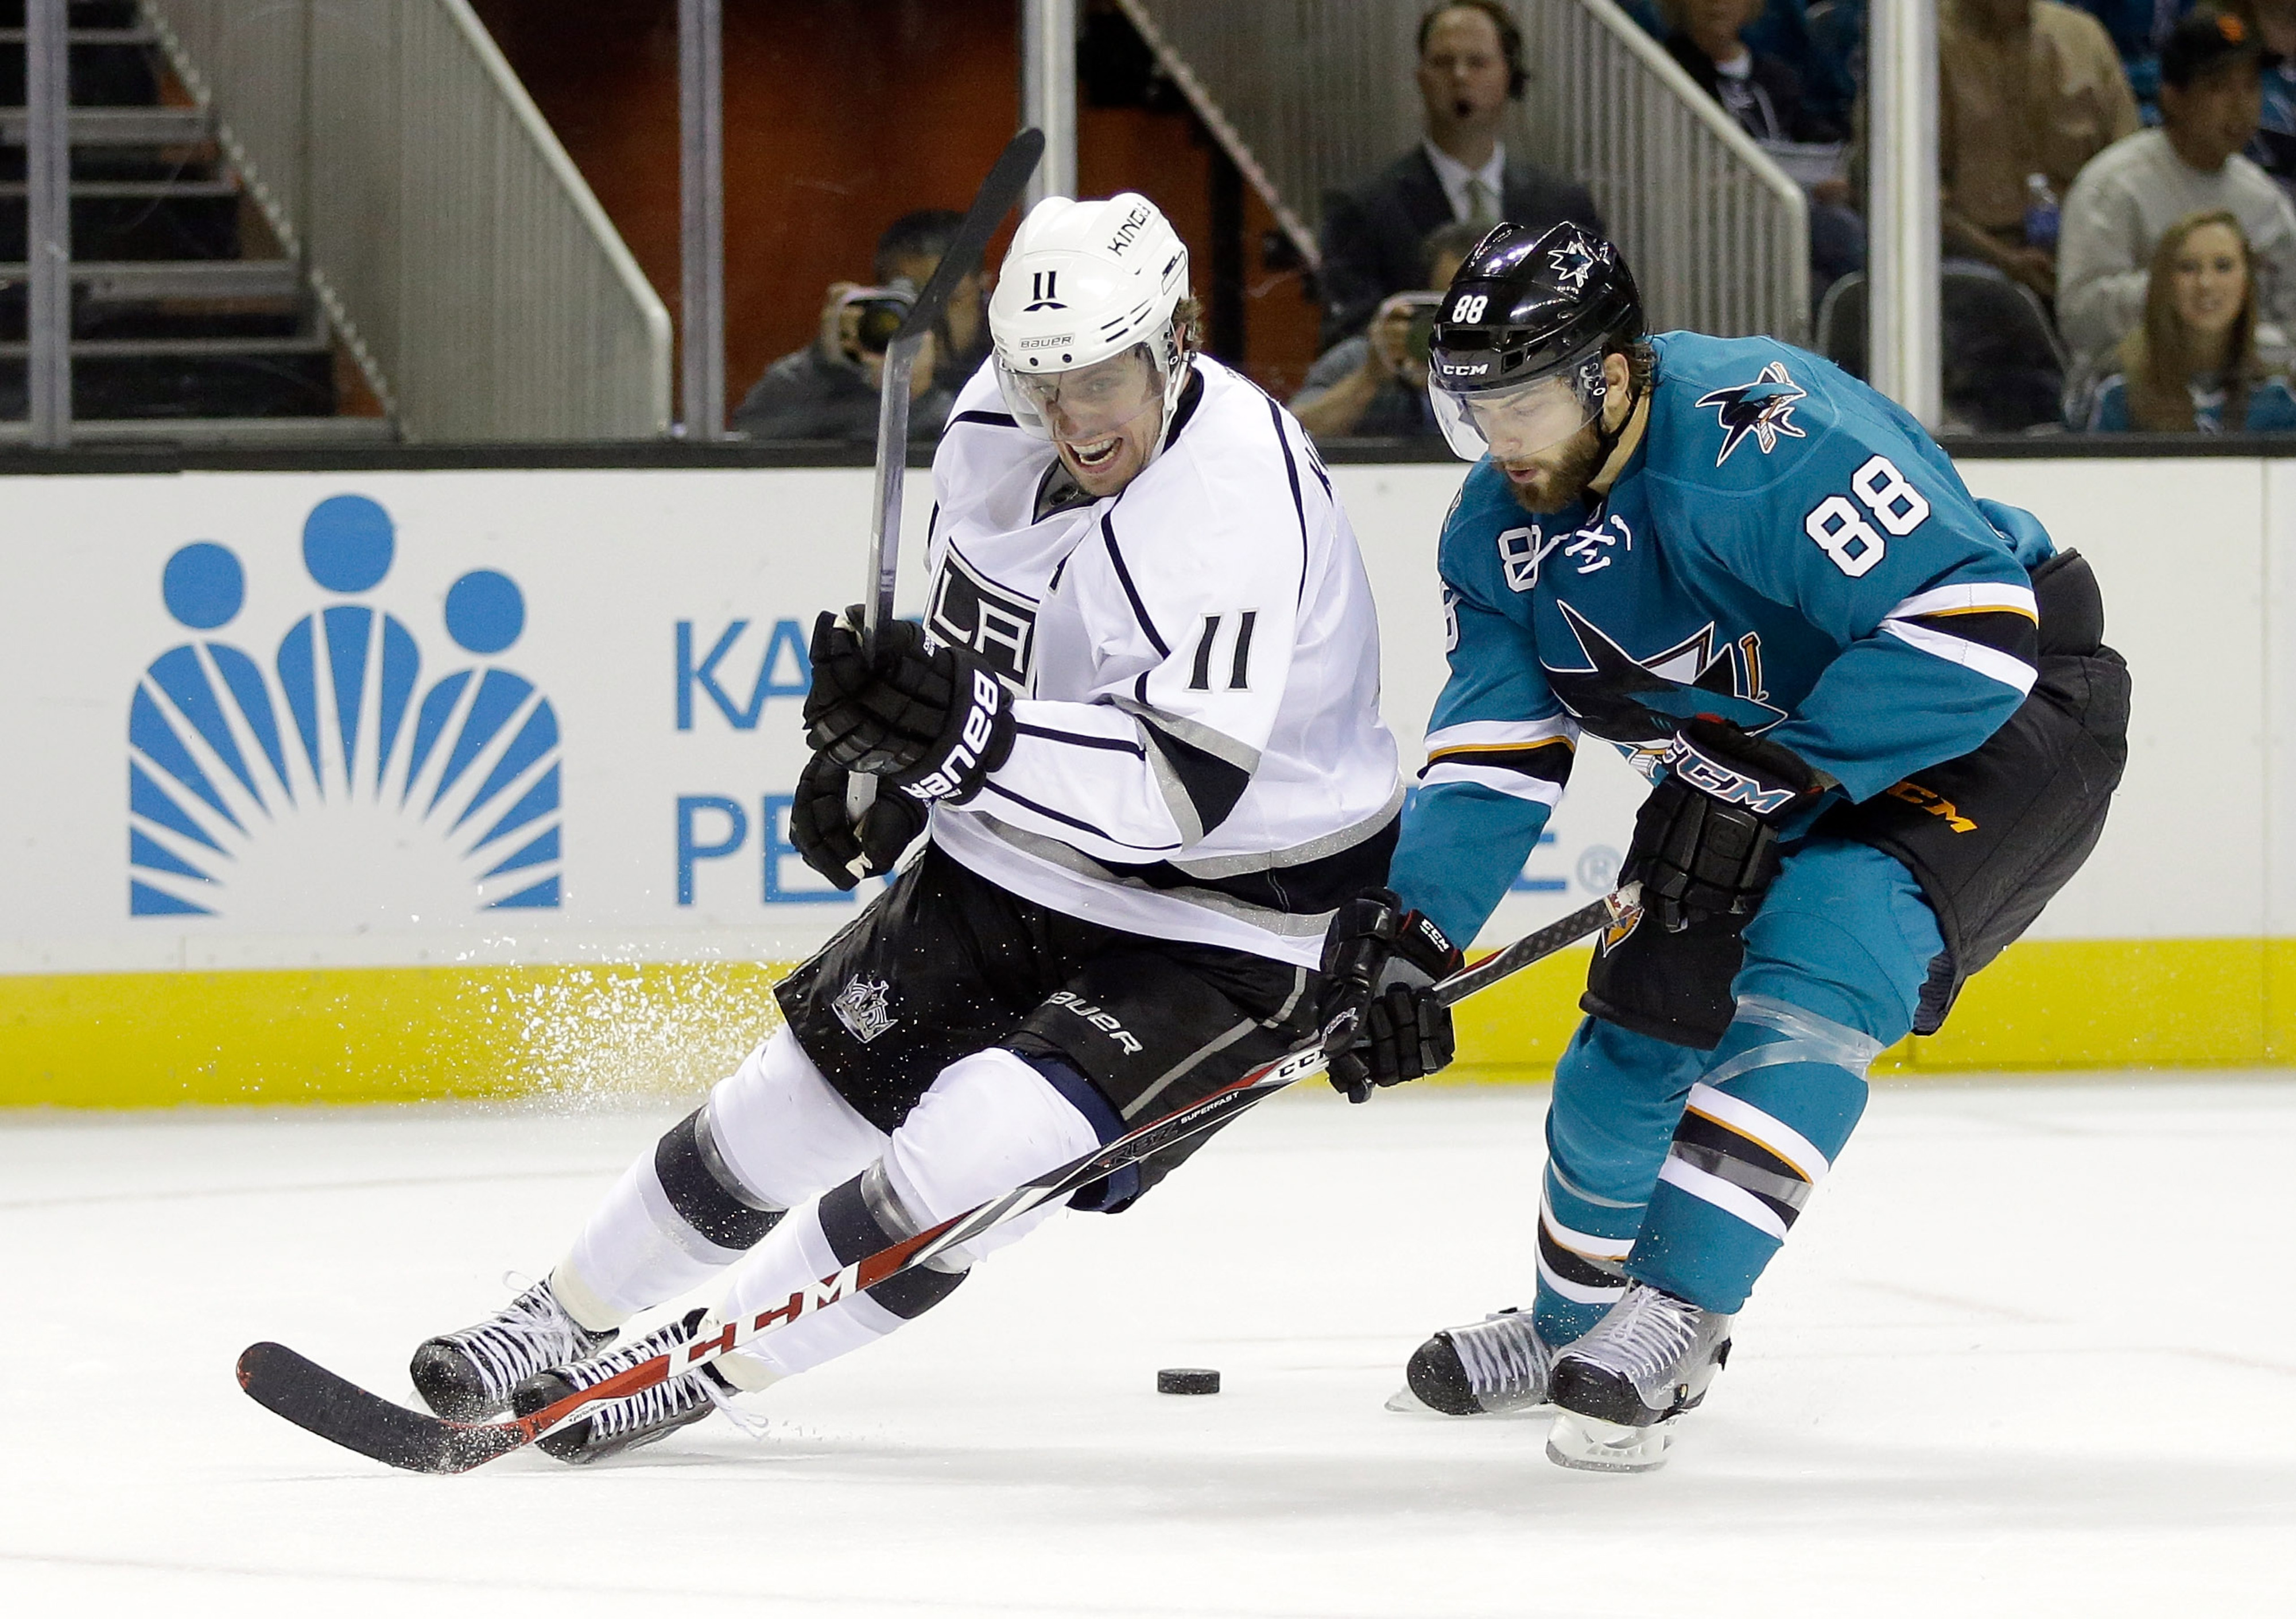 maybe we'll mention this Kopitar guy, I think he's pretty good